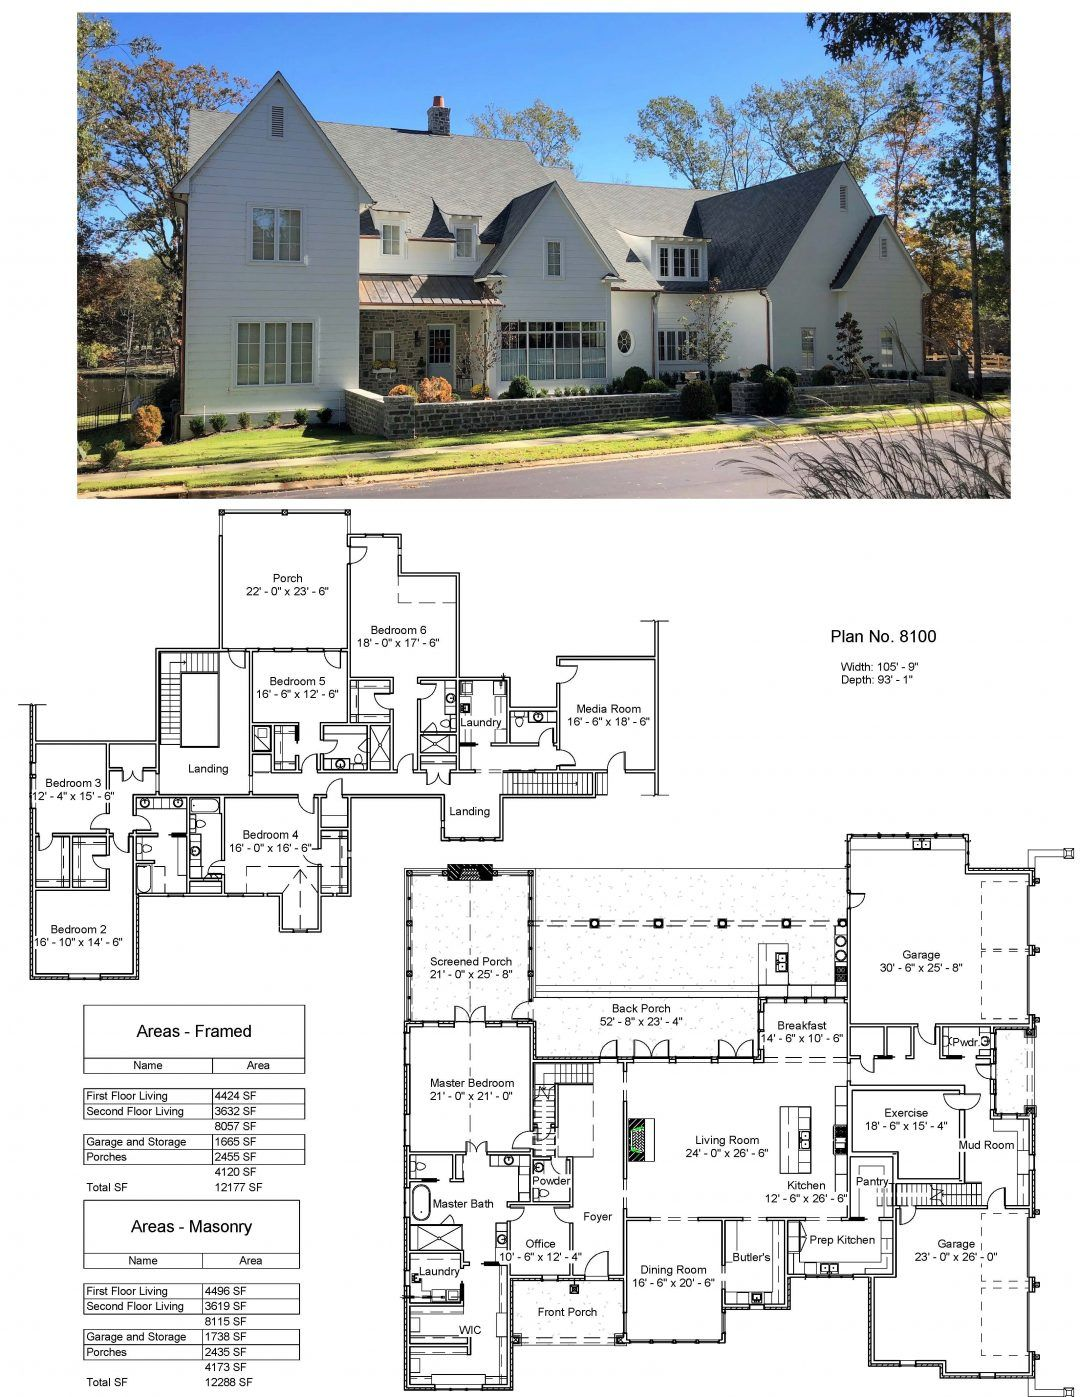 Plan 8100 Design Studio House Blueprints Luxury House Plans Dream House Plans